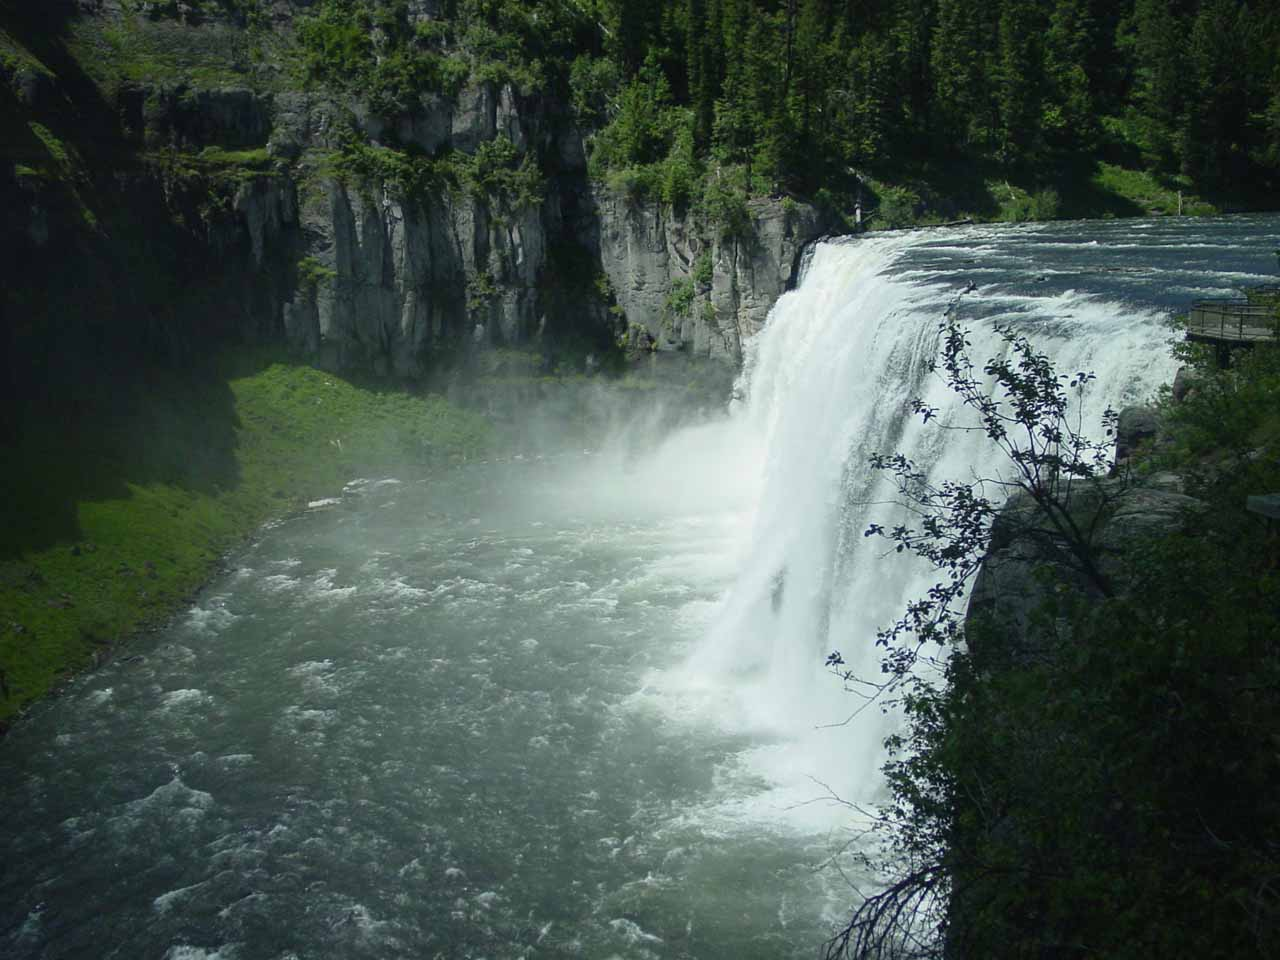 Upper Mesa Falls between West Yellowstone, MT and Ashton, ID